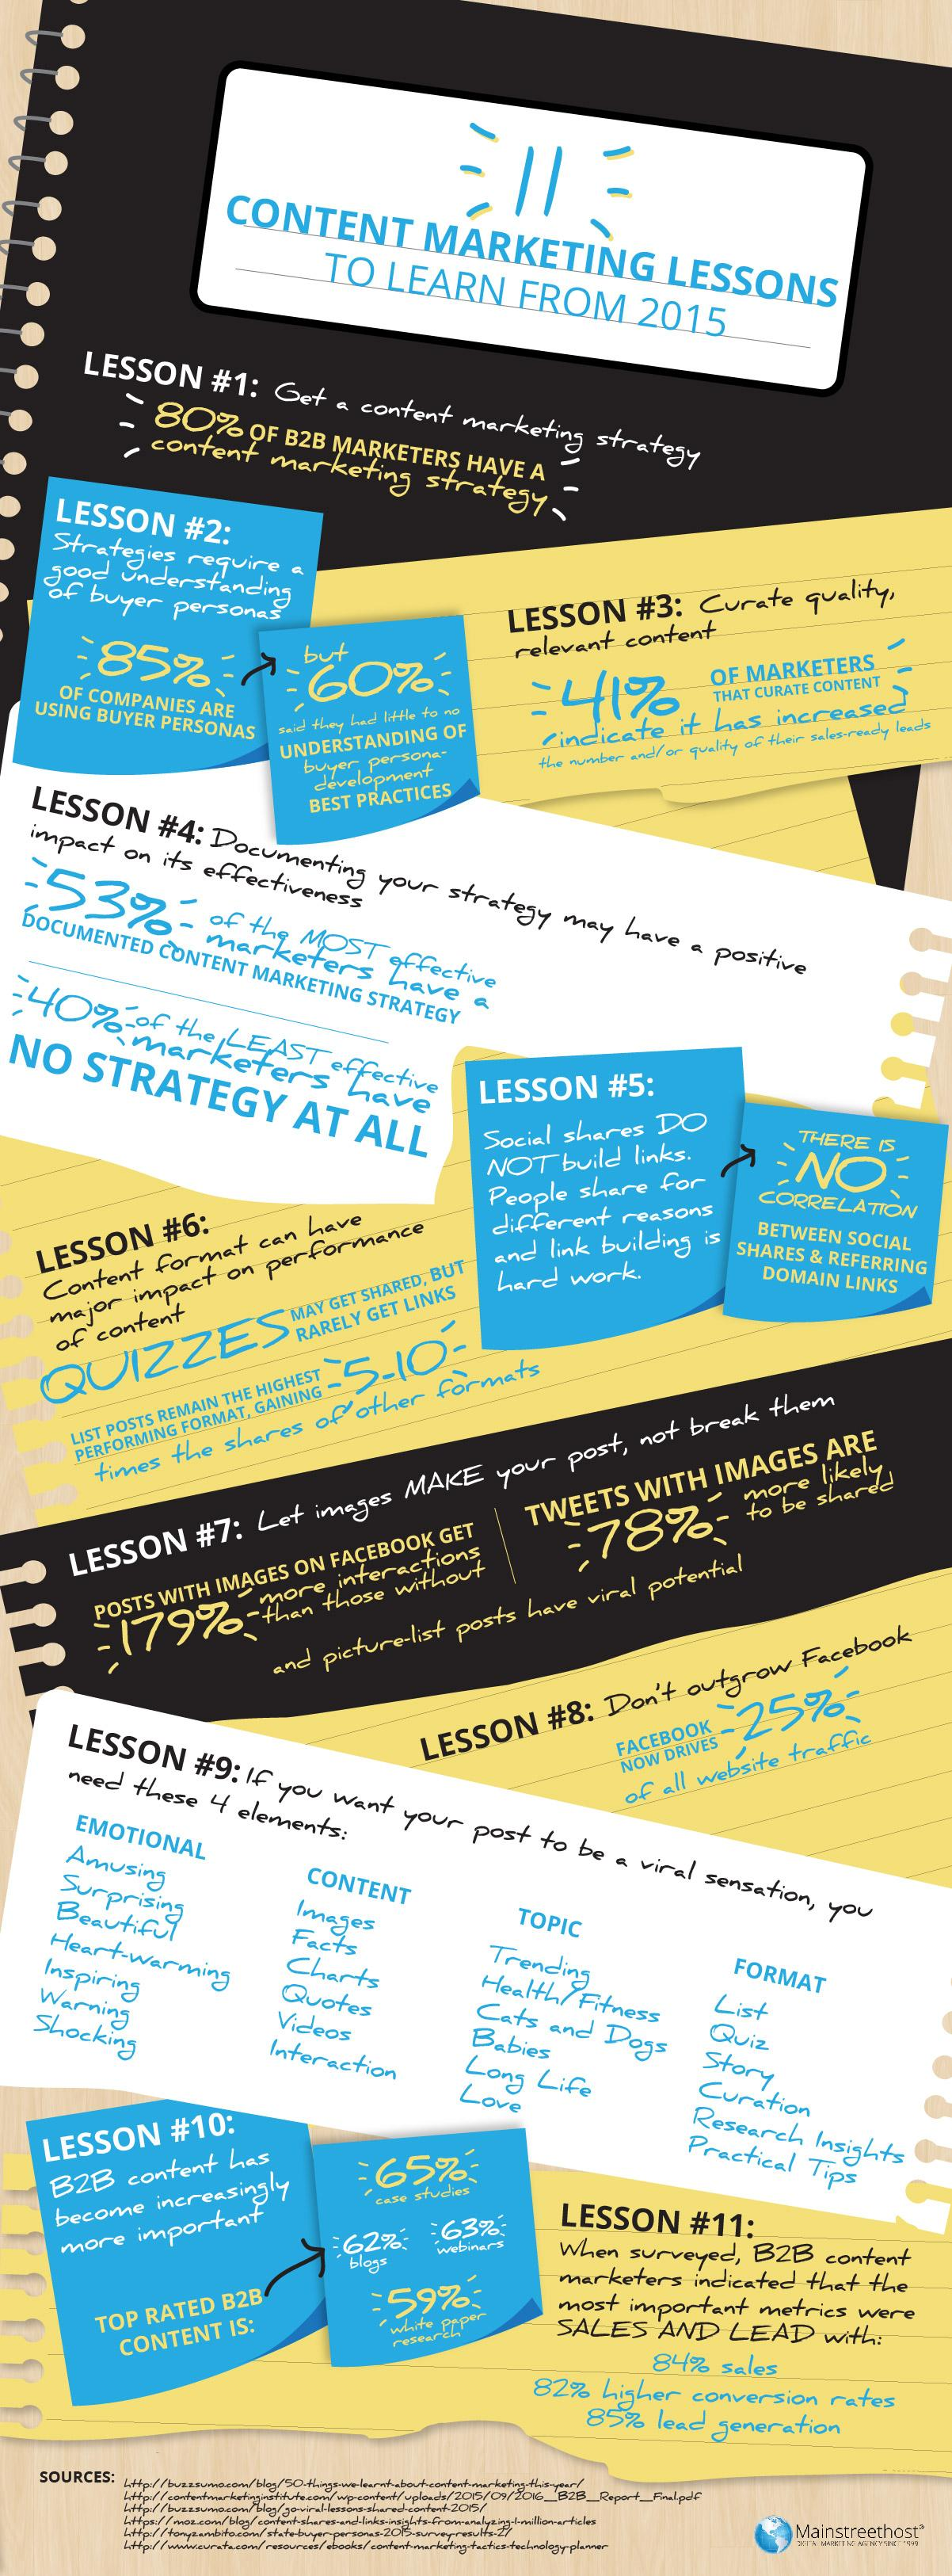 11 Content Marketing Lessons Infographic